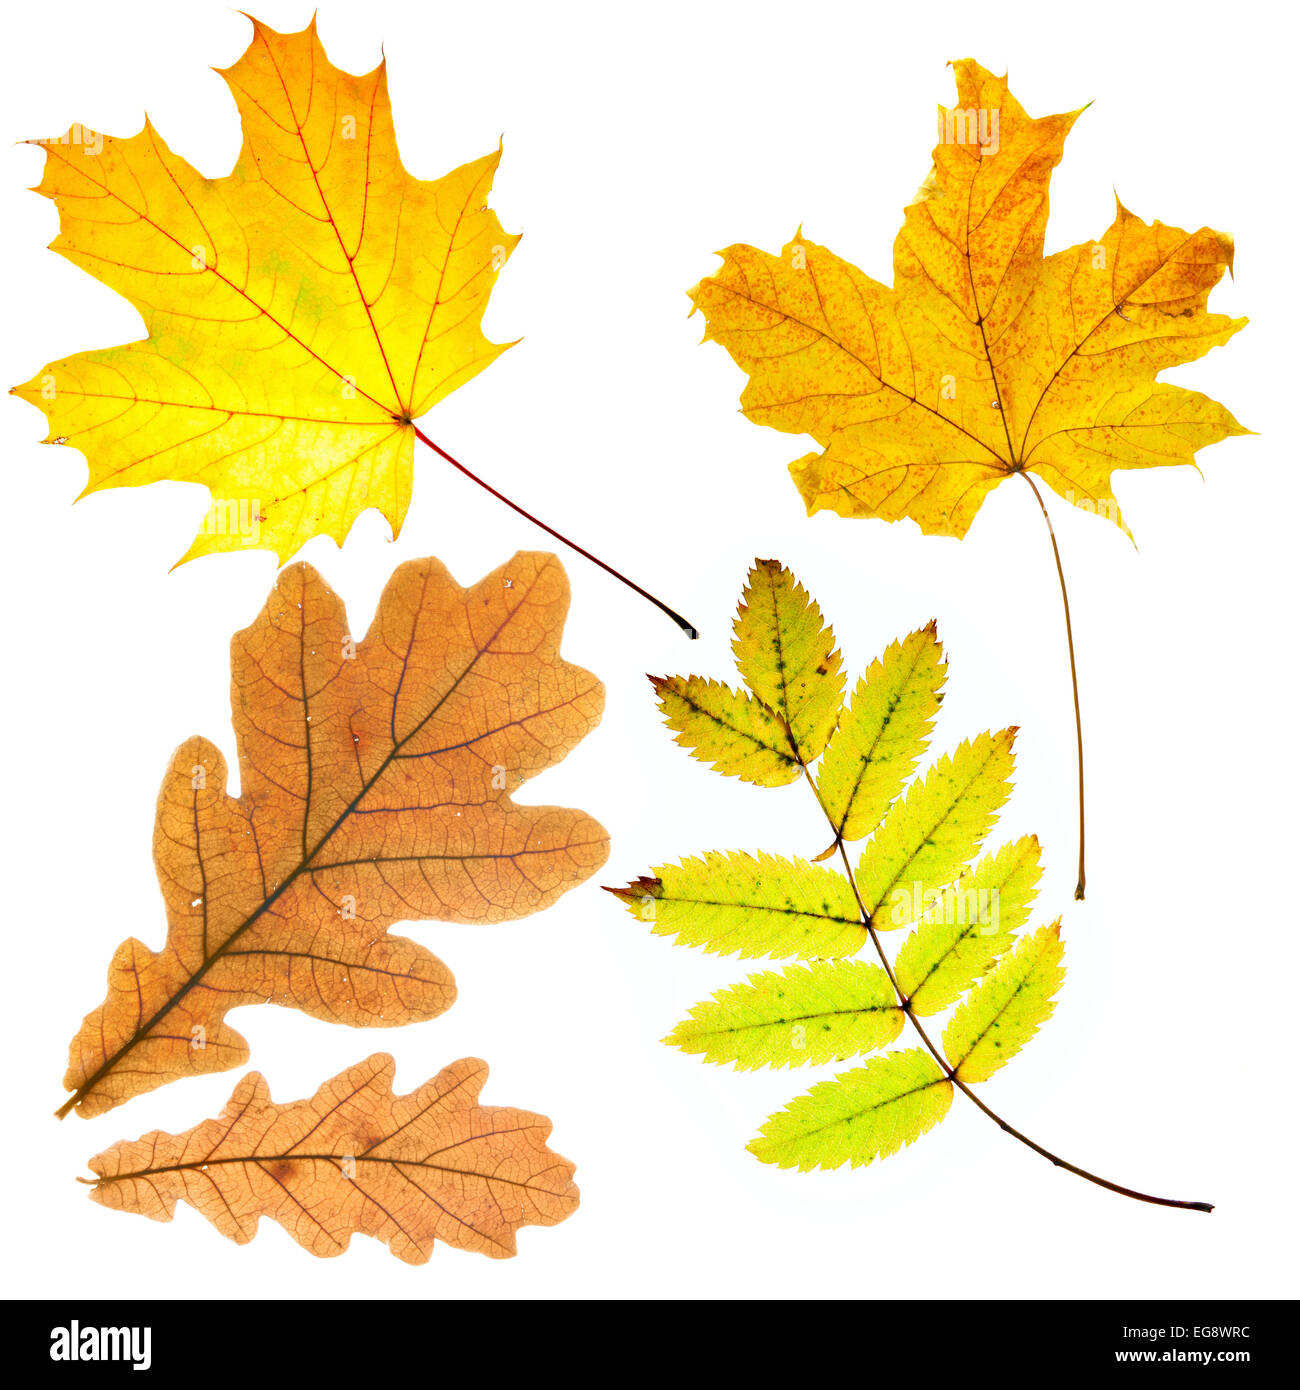 Dry fallen leaves isolated over whte background Stock Photo